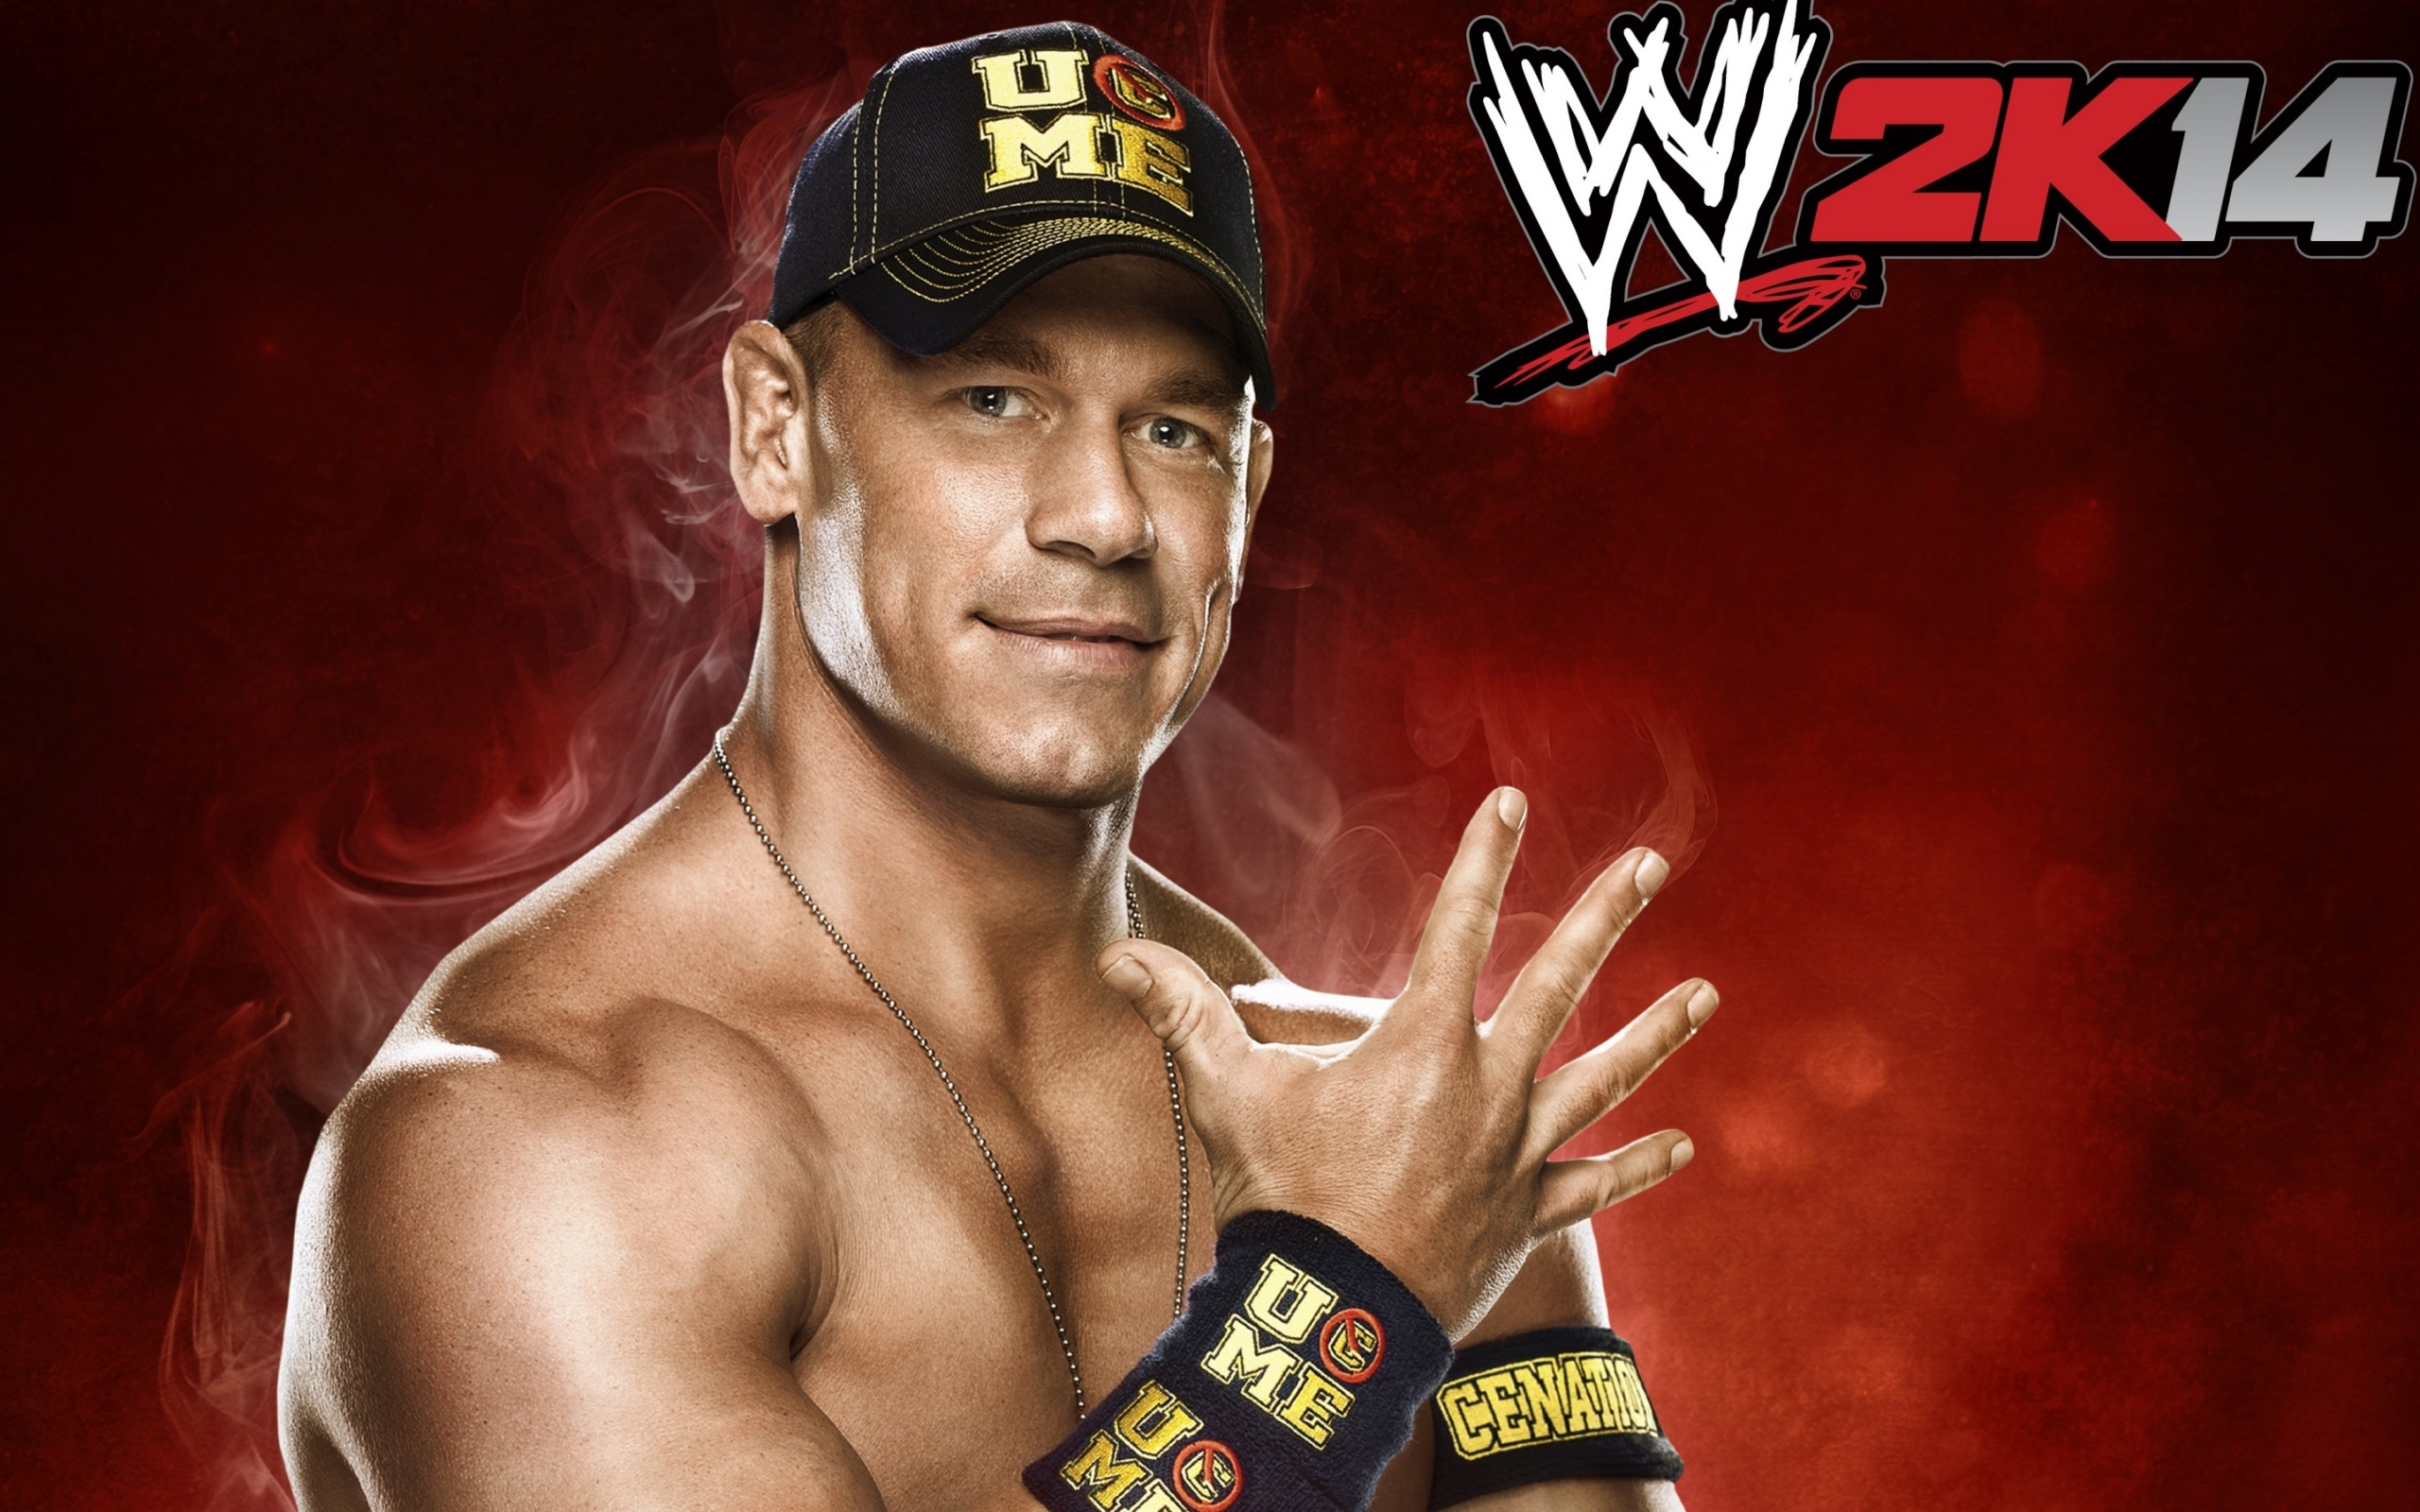 wwe superstar john cena hd wallpaper